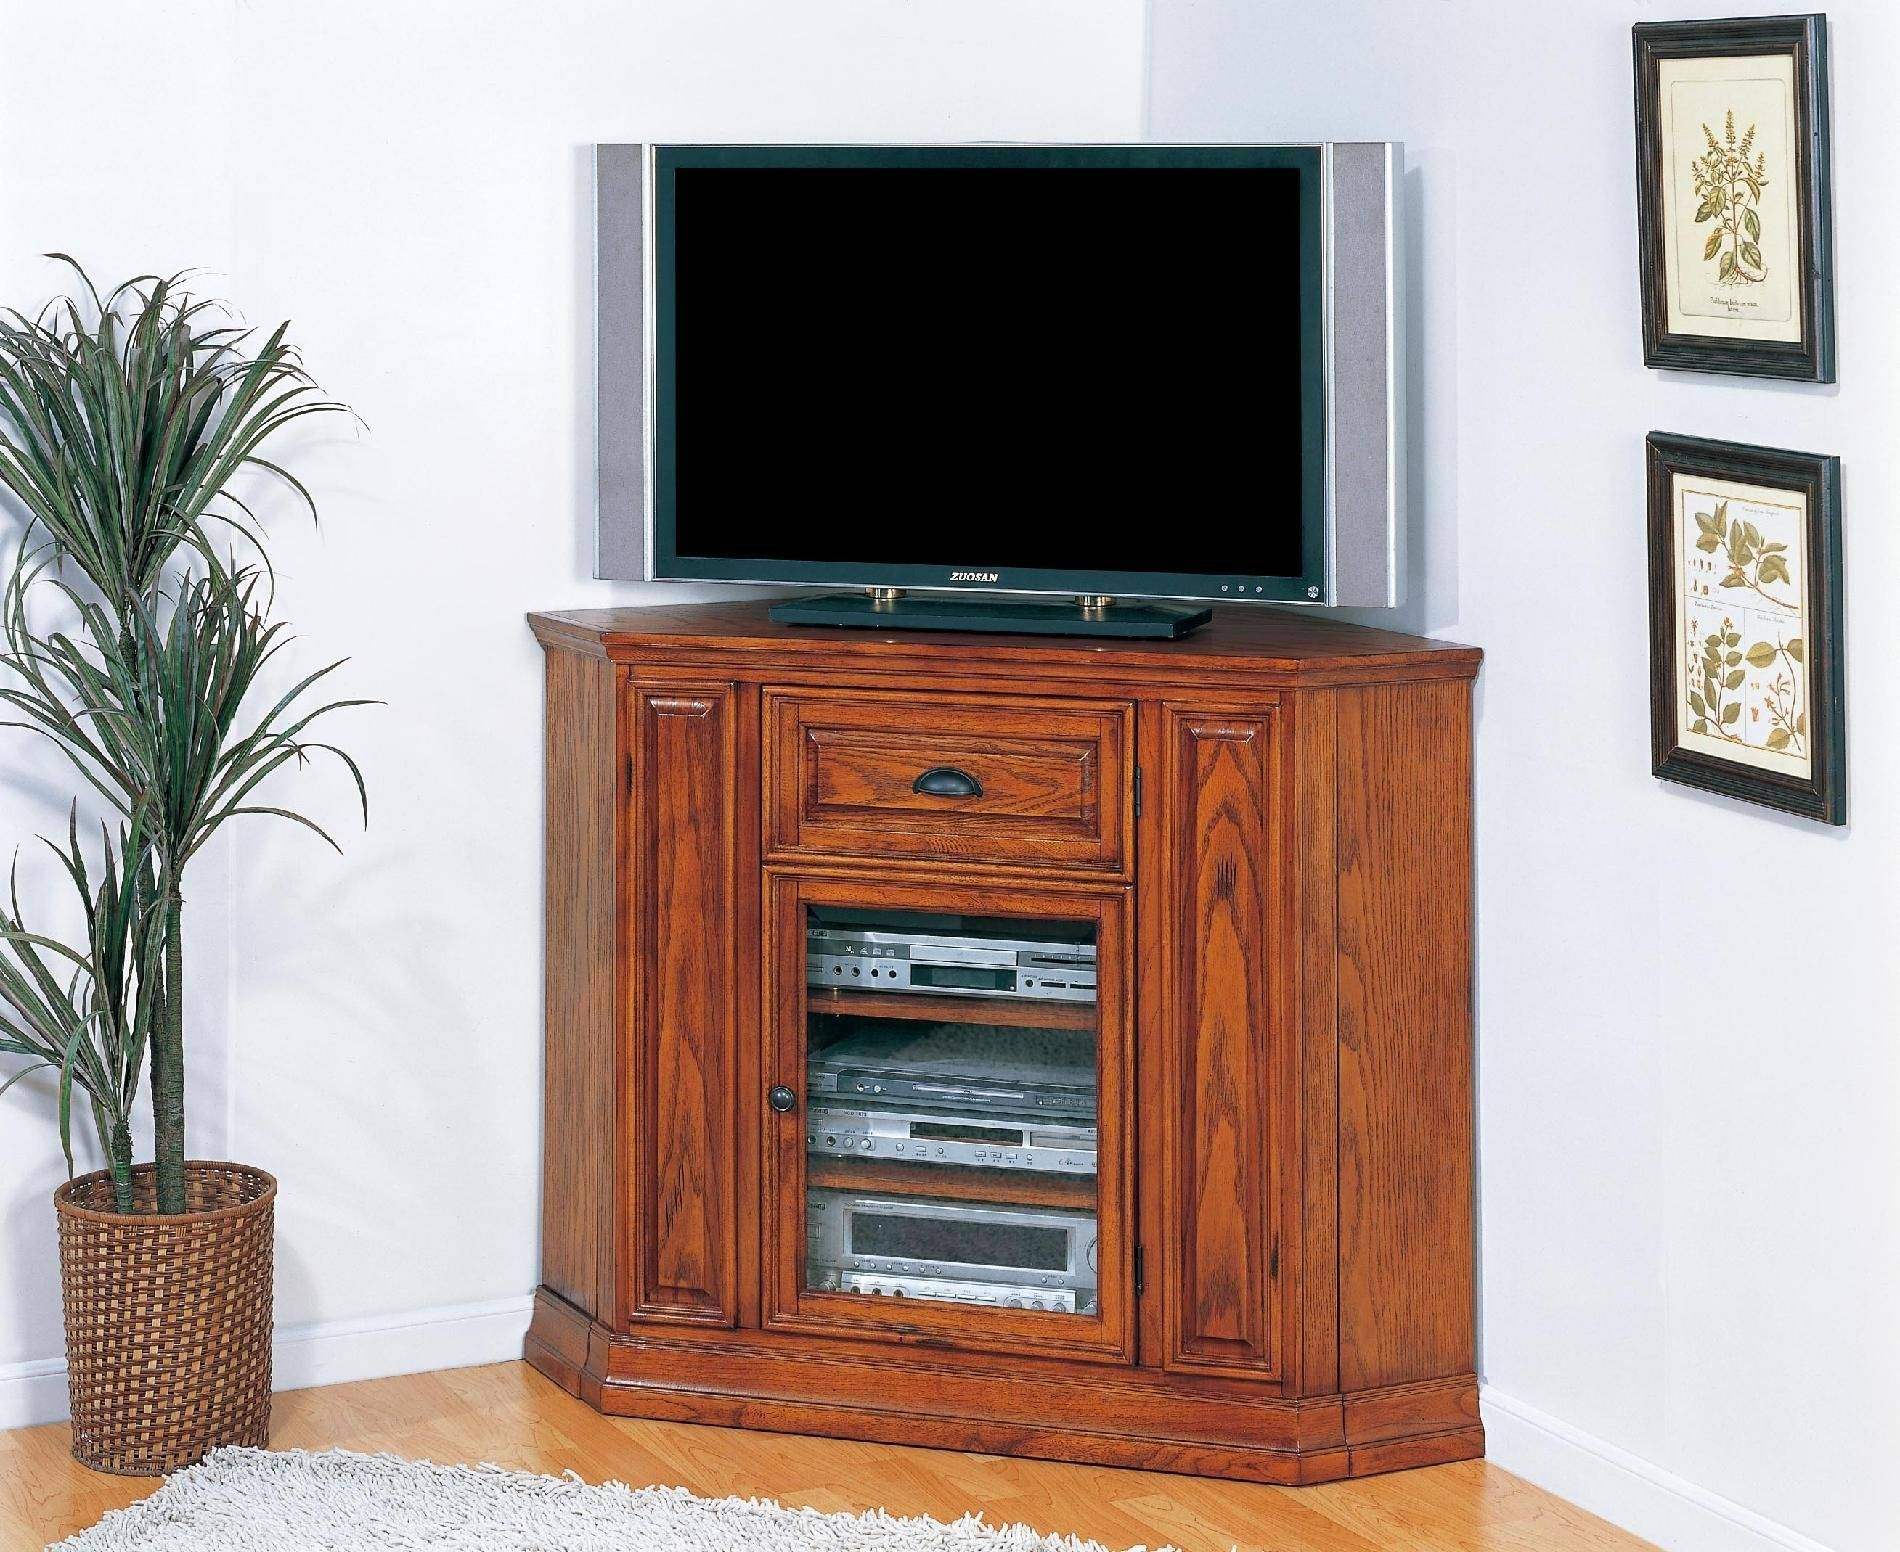 Tall Tv Corner Unit For Bedroom Colletion - Properwinston regarding Tall Tv Cabinets Corner Unit (Image 8 of 15)